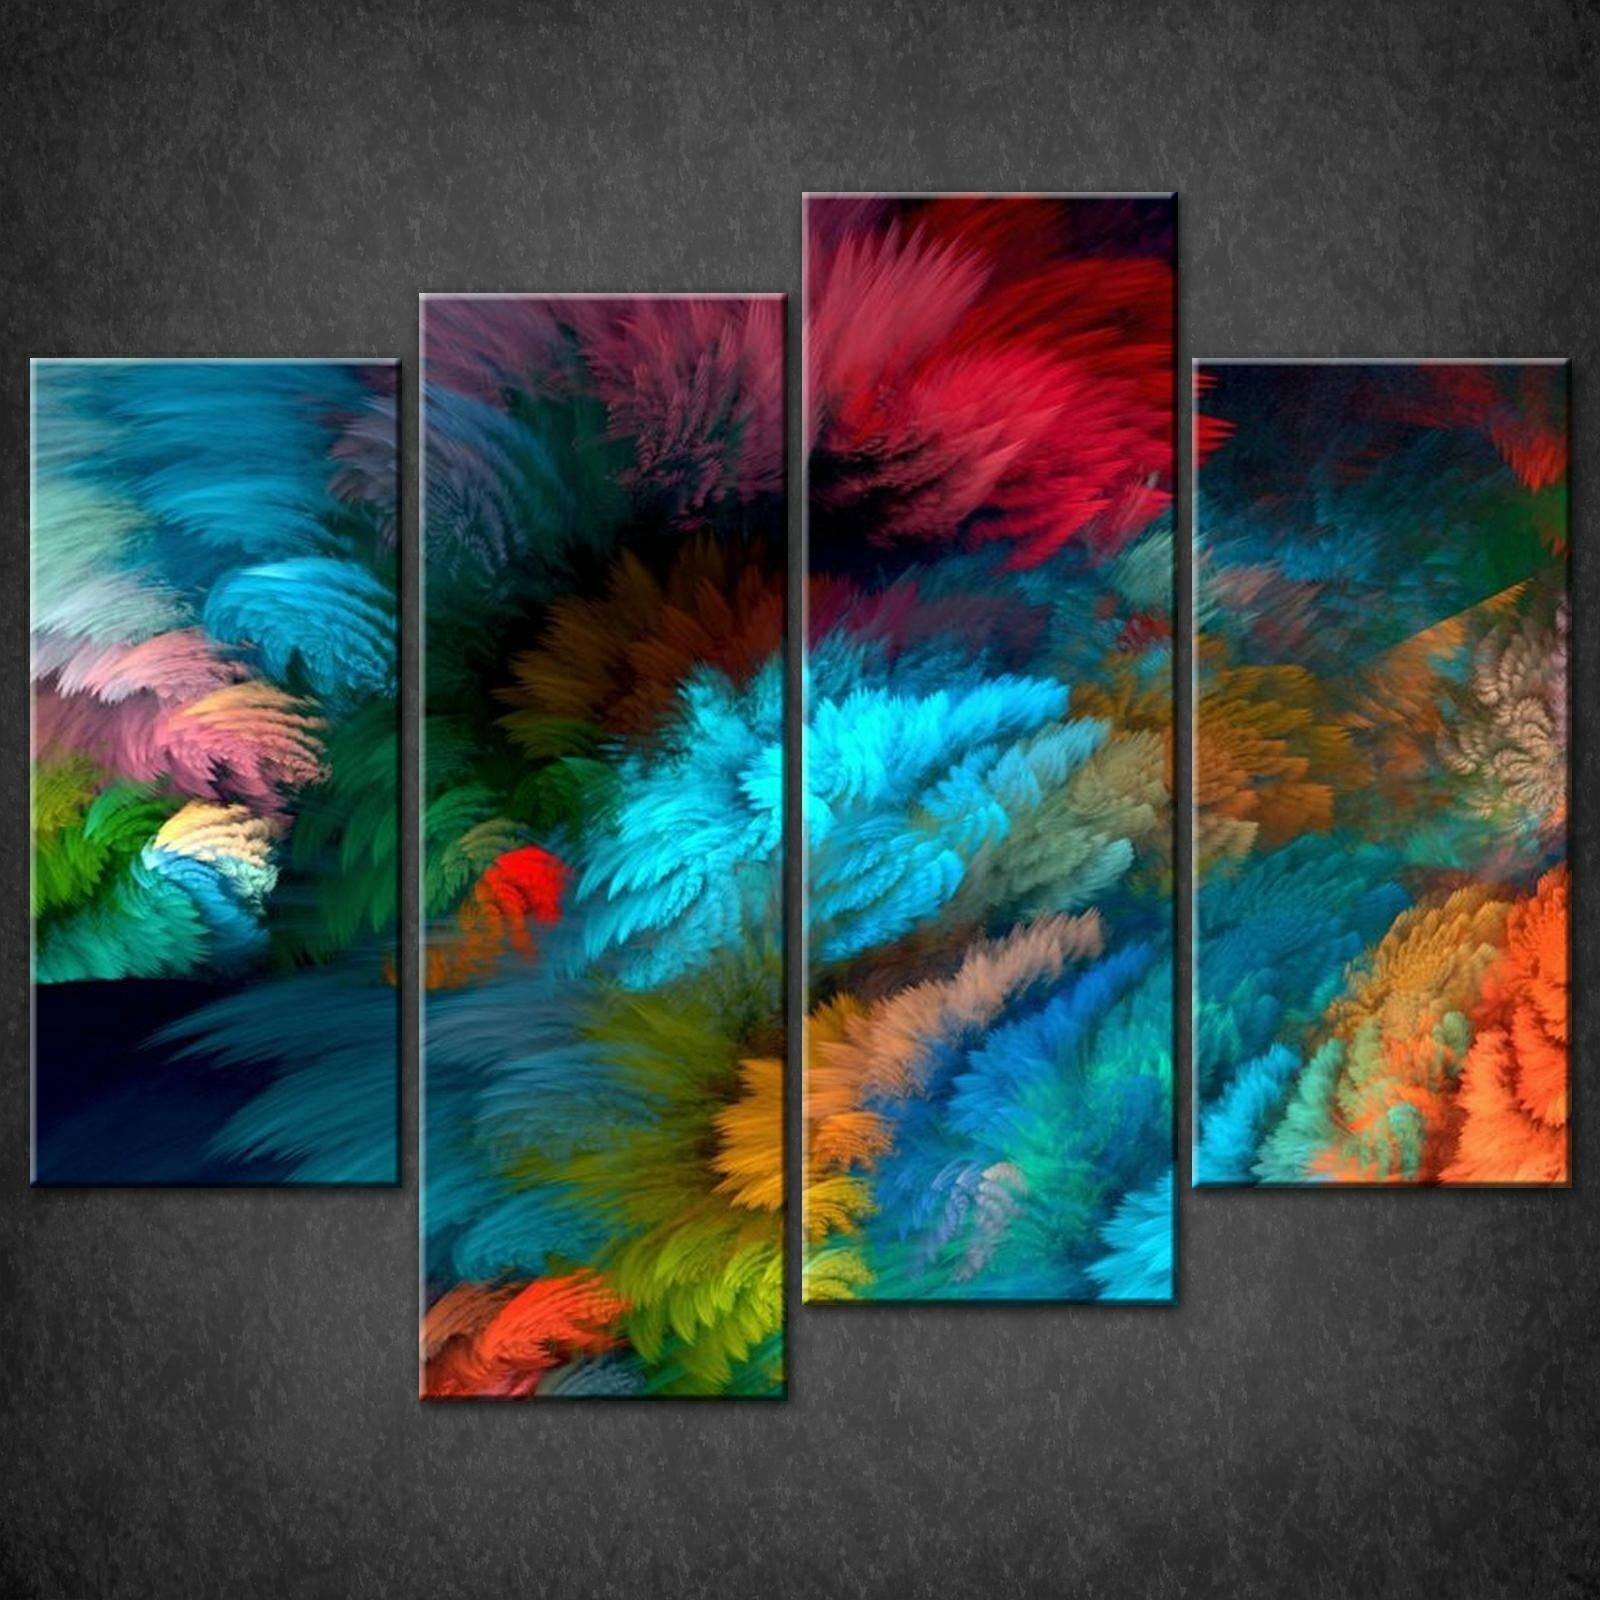 Decor: Large Abstract Colourful Split Canvas Wall Art Pictures Prints Intended For Most Recent Abstract Canvas Wall Art (View 13 of 20)